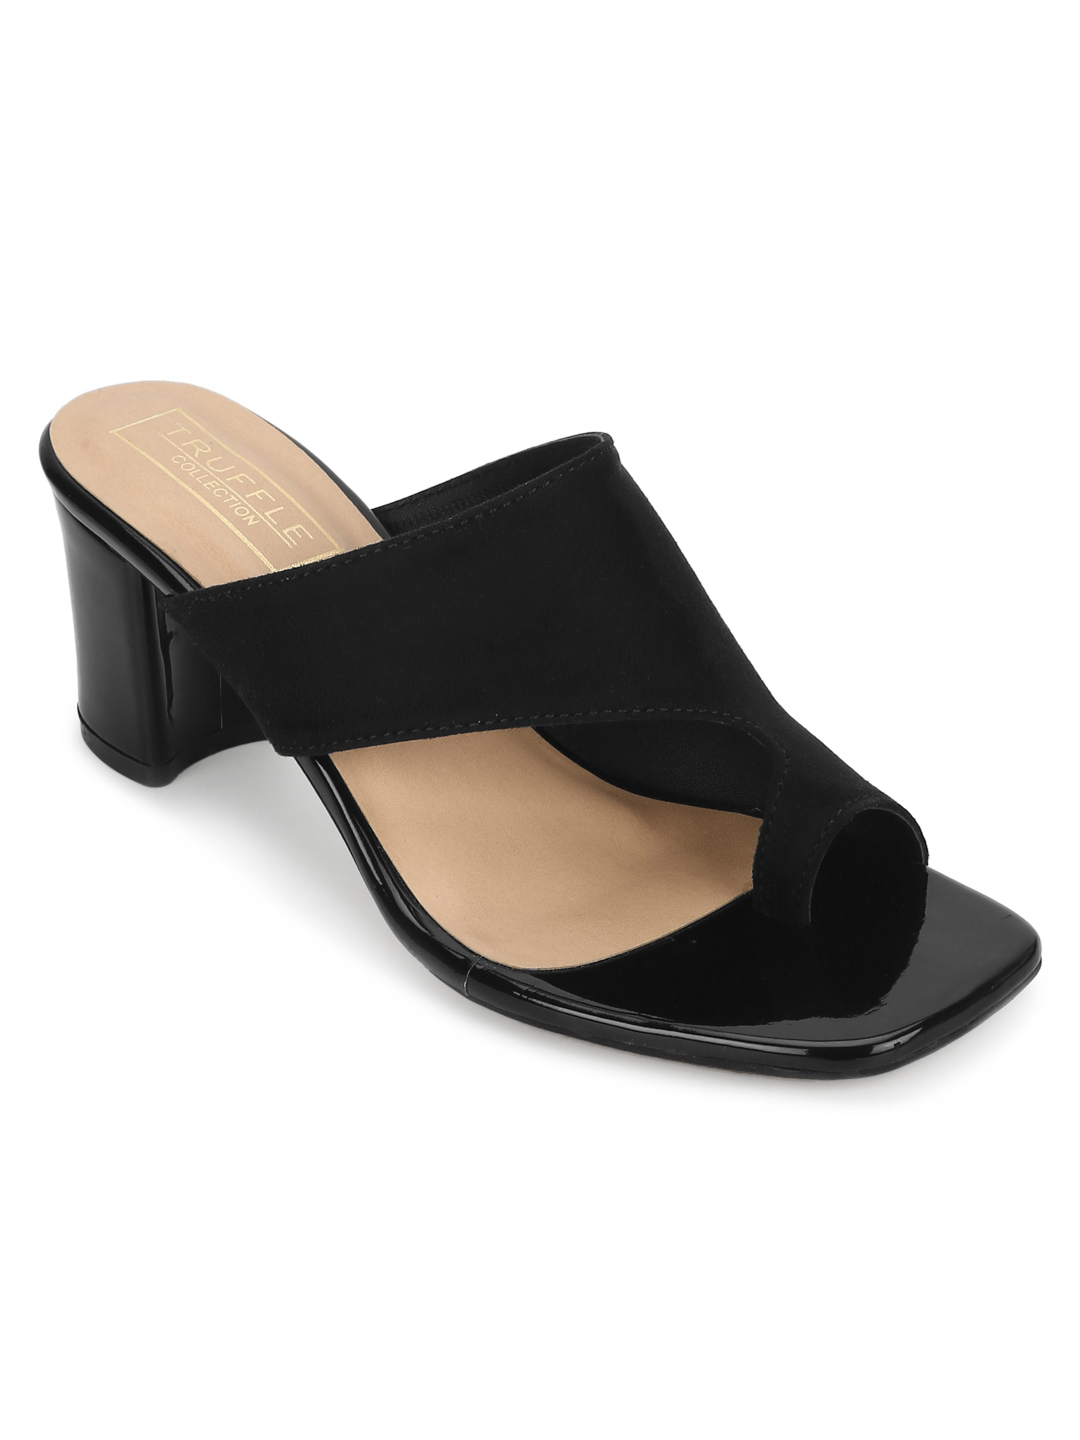 Truffle Collection | Black Suede Square Toe Sandals